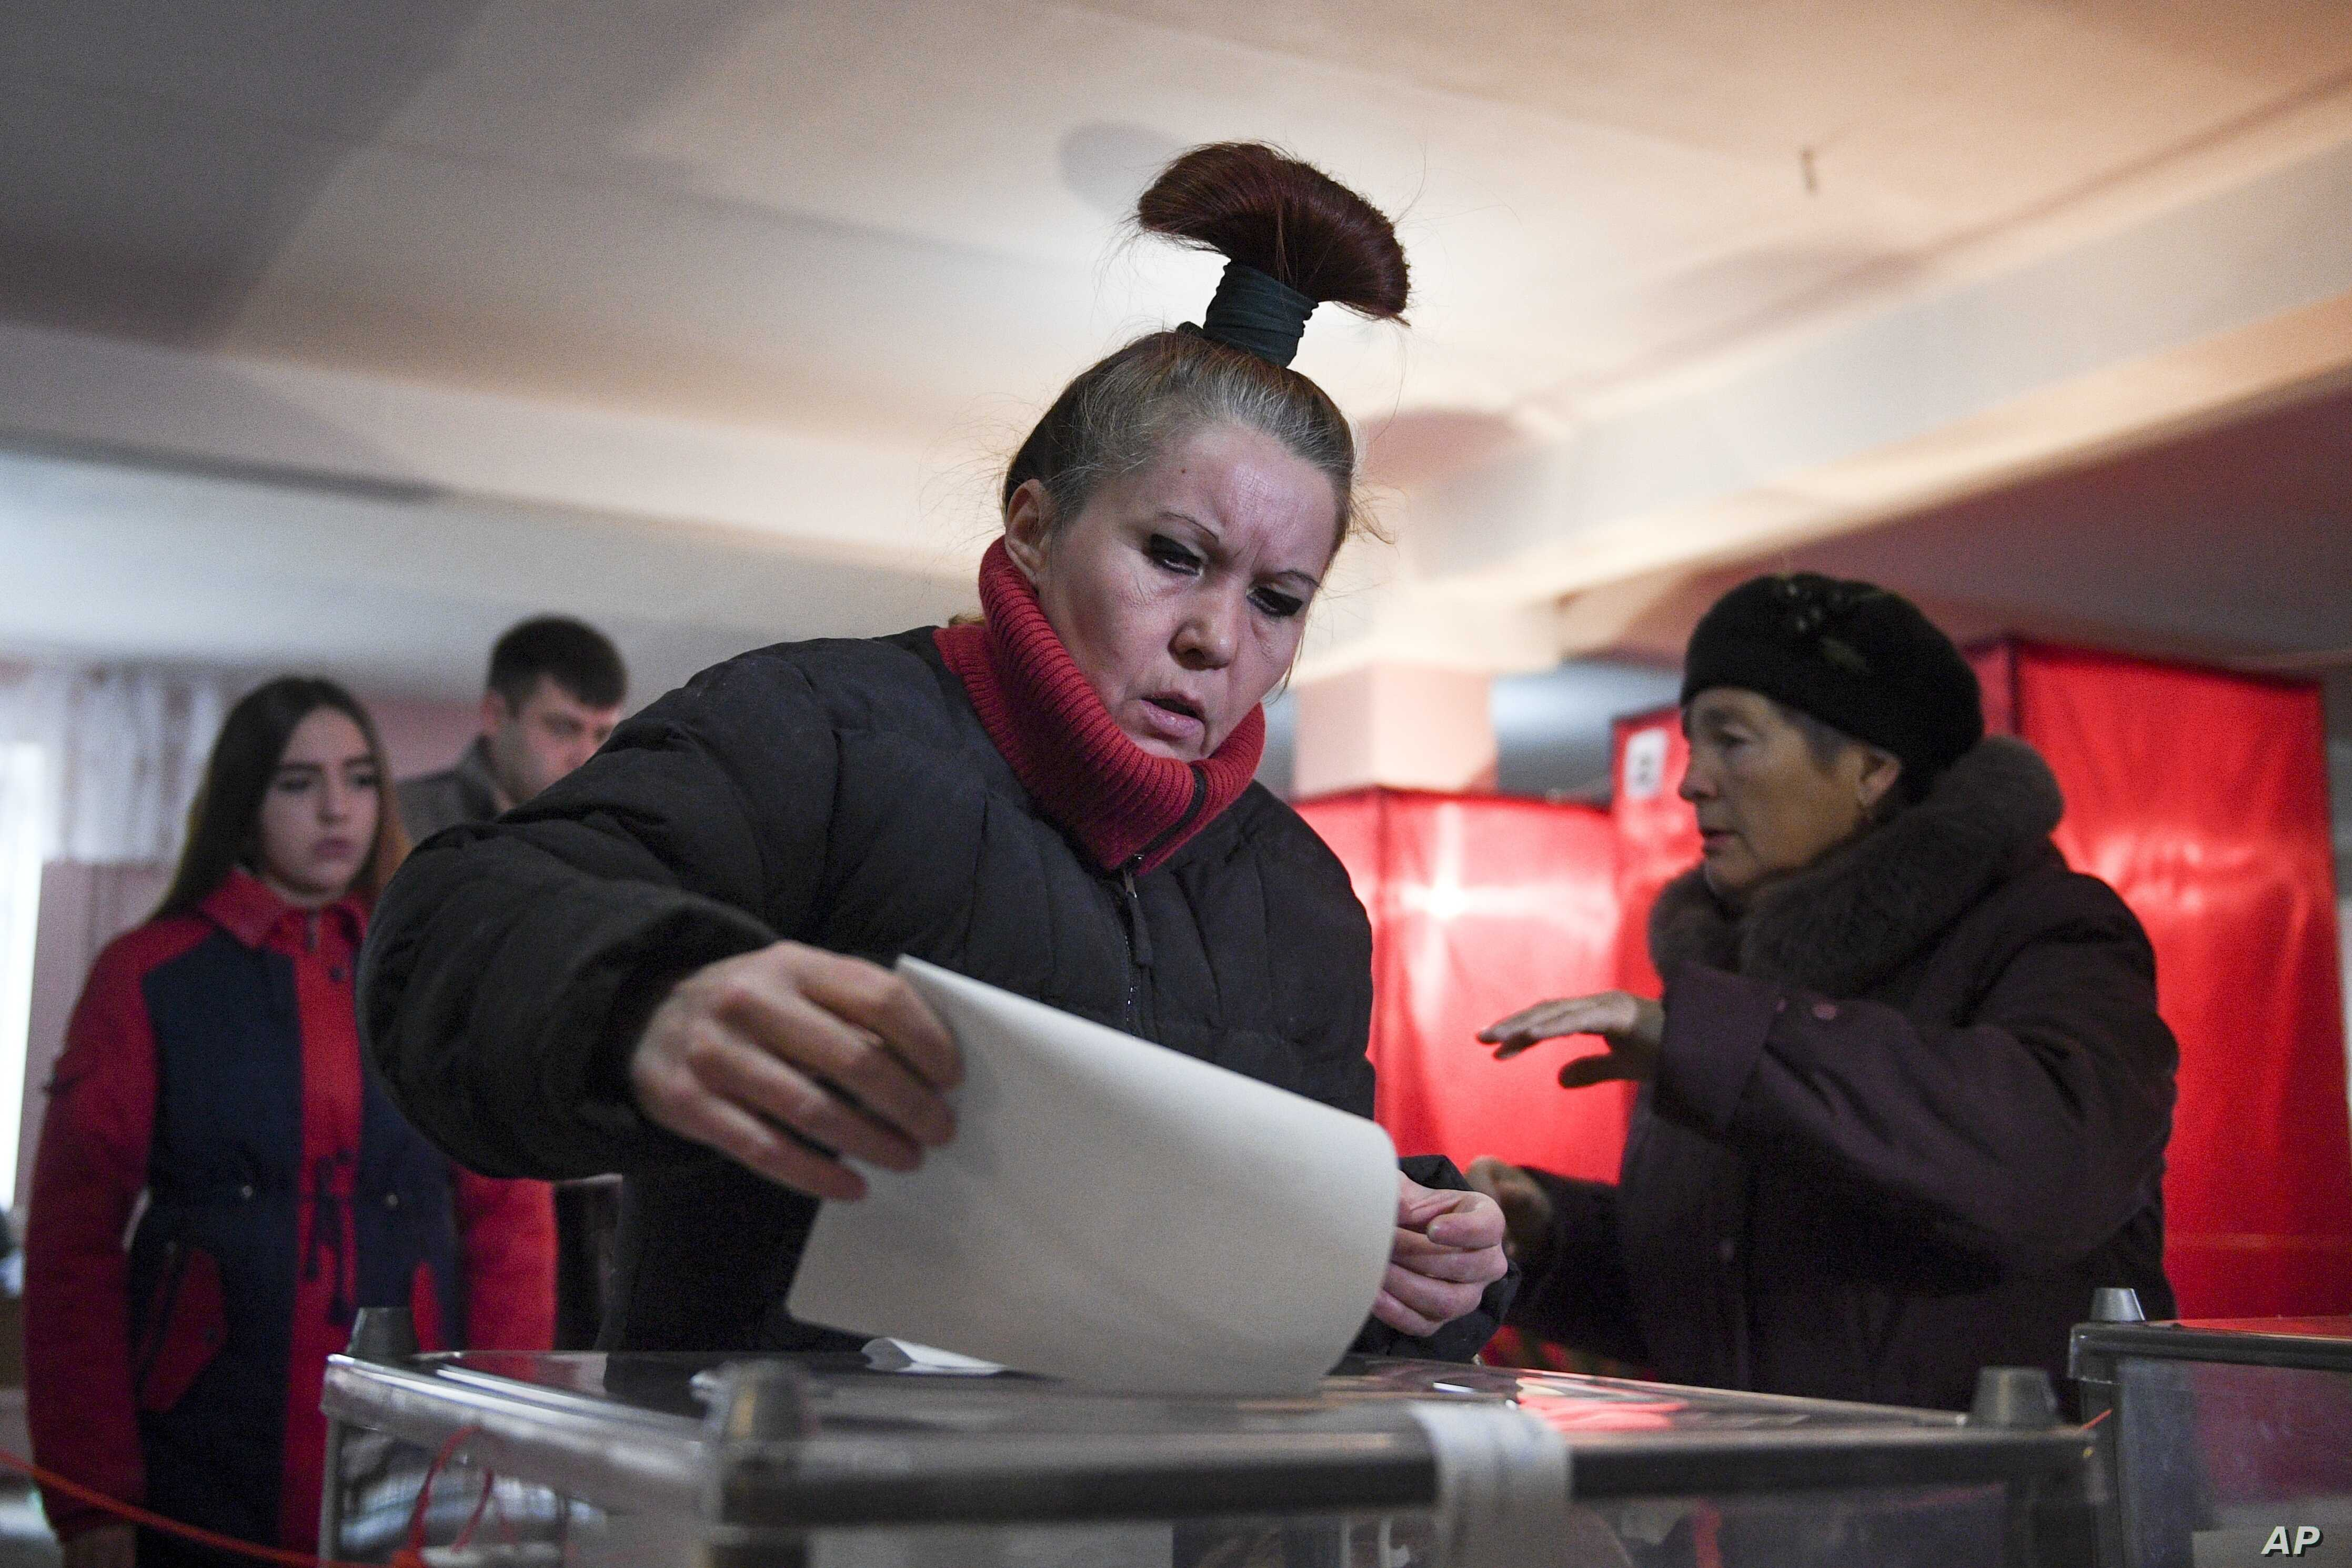 A woman casts her ballot at a polling station during rebel elections in Donetsk, Ukraine, Nov. 11, 2018.